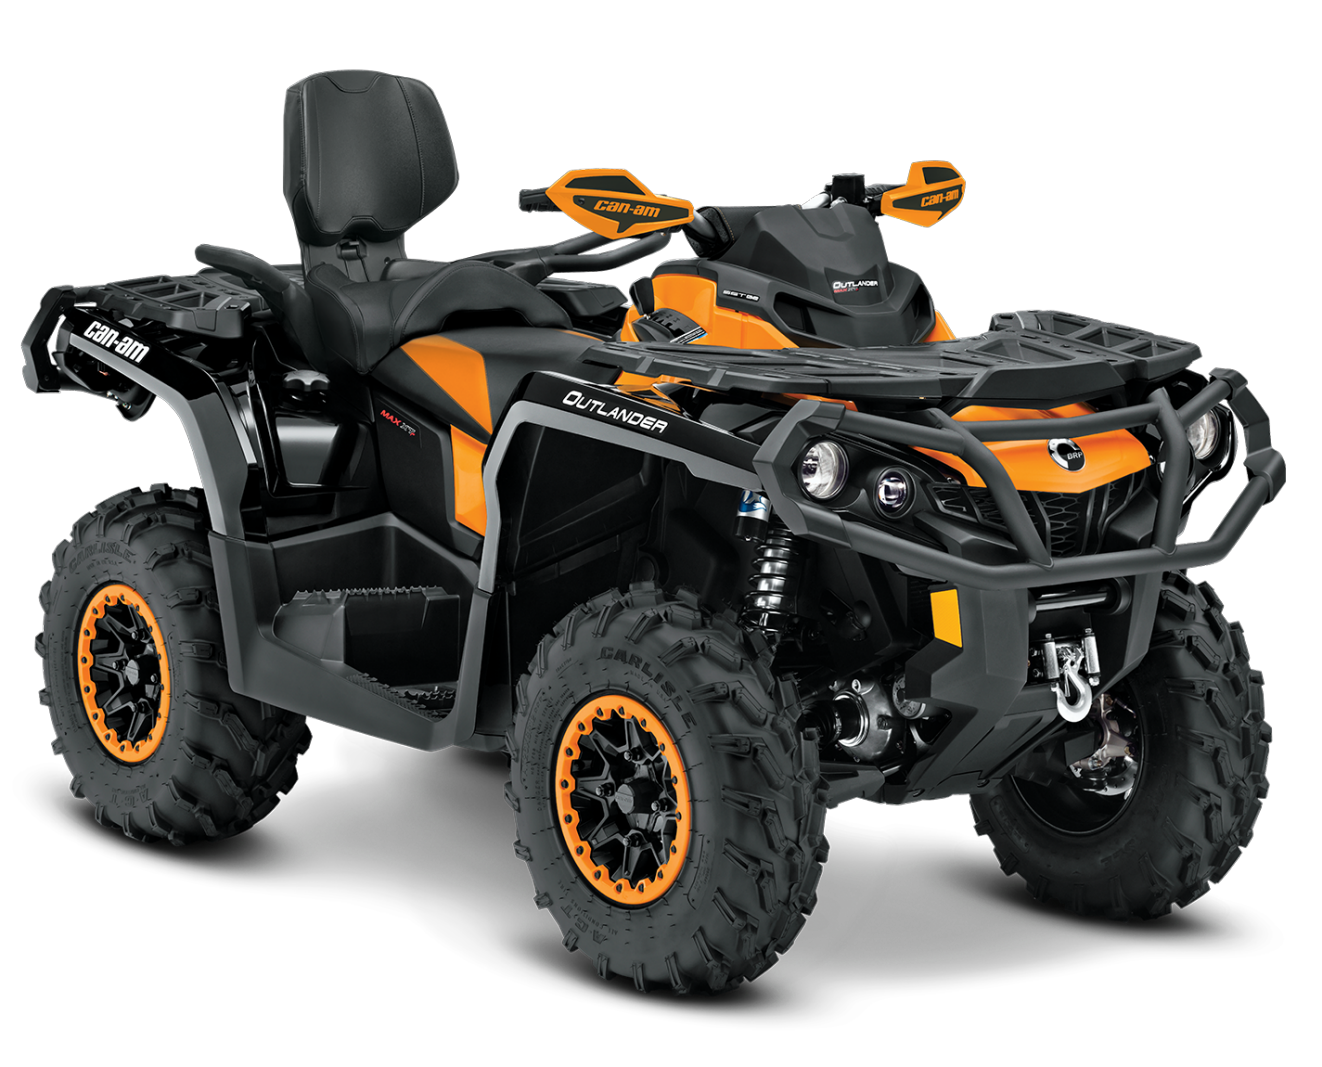 New 2015 can am outlander max xt p atvs for sale in new hampshire 2015 can am outlander max xt p loaded with features including an upgraded suspension and